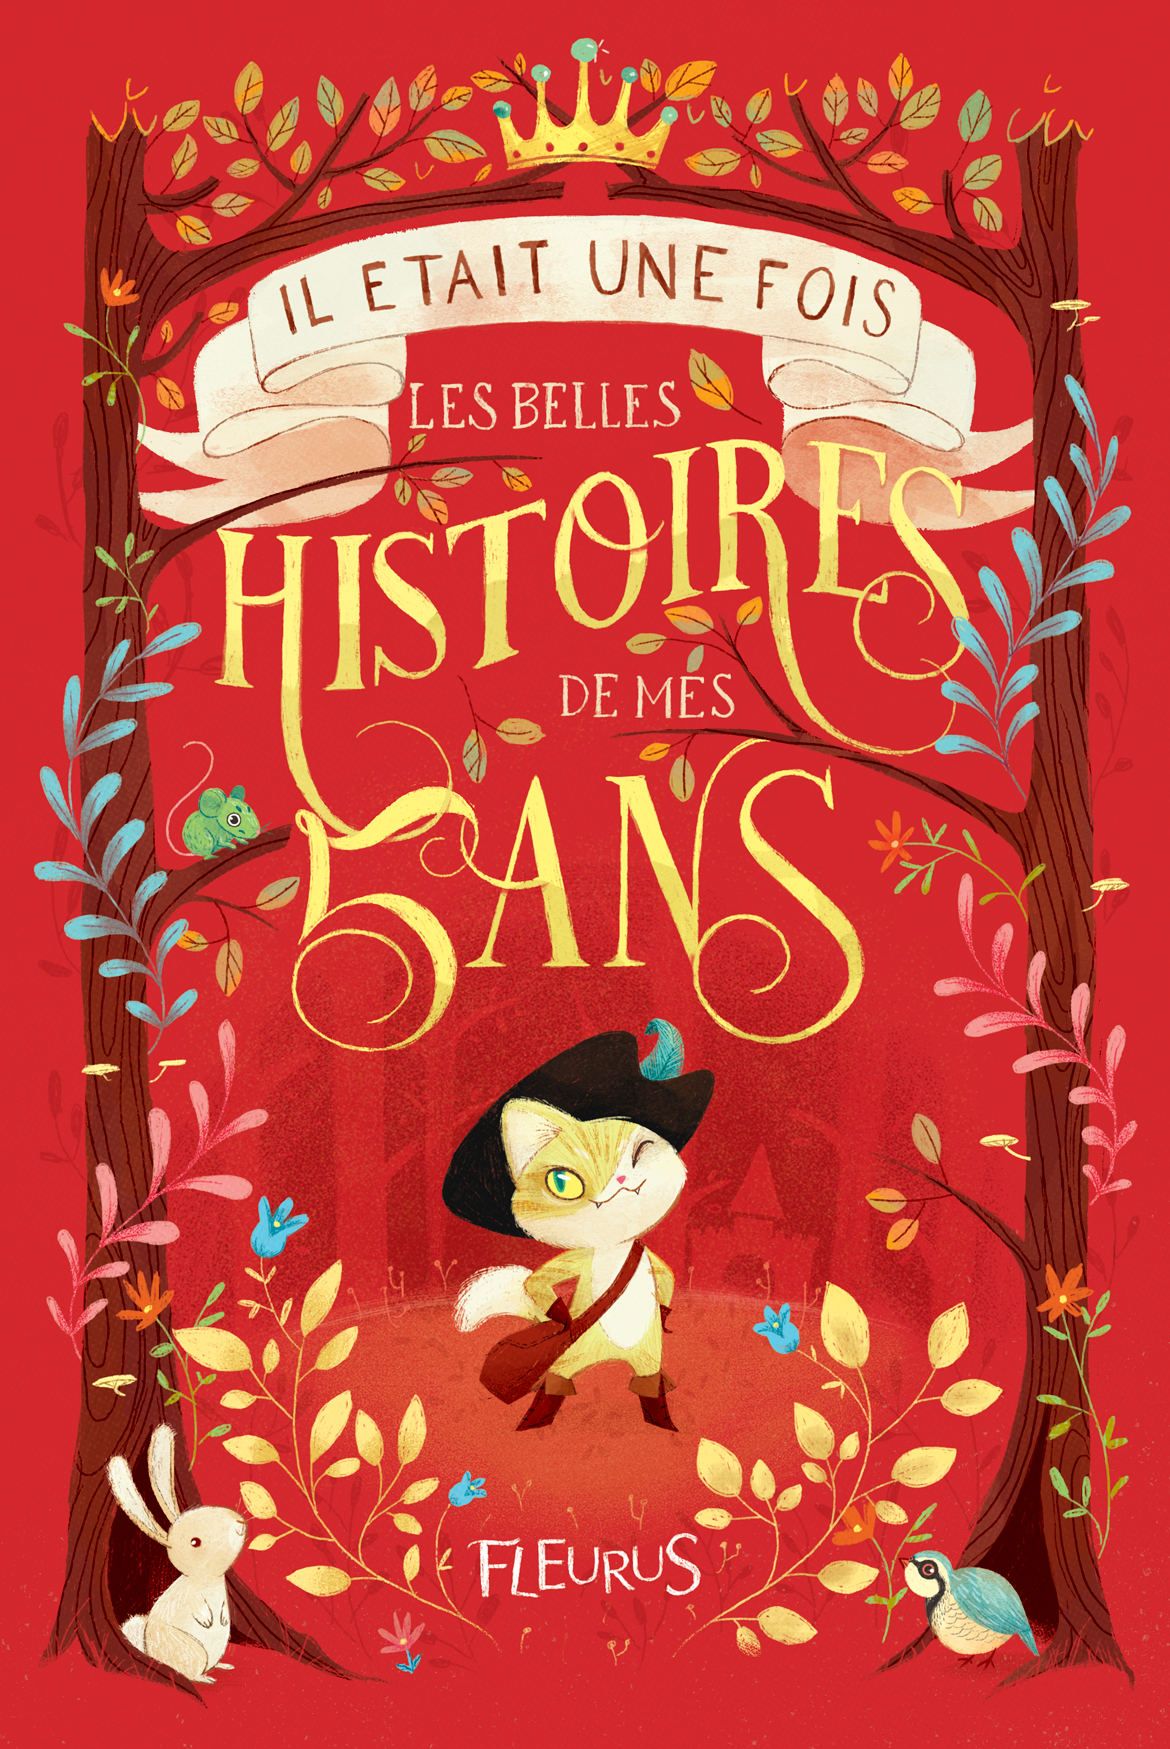 Book Cover Drawing Book : Children s book covers for fleurus editions on behance